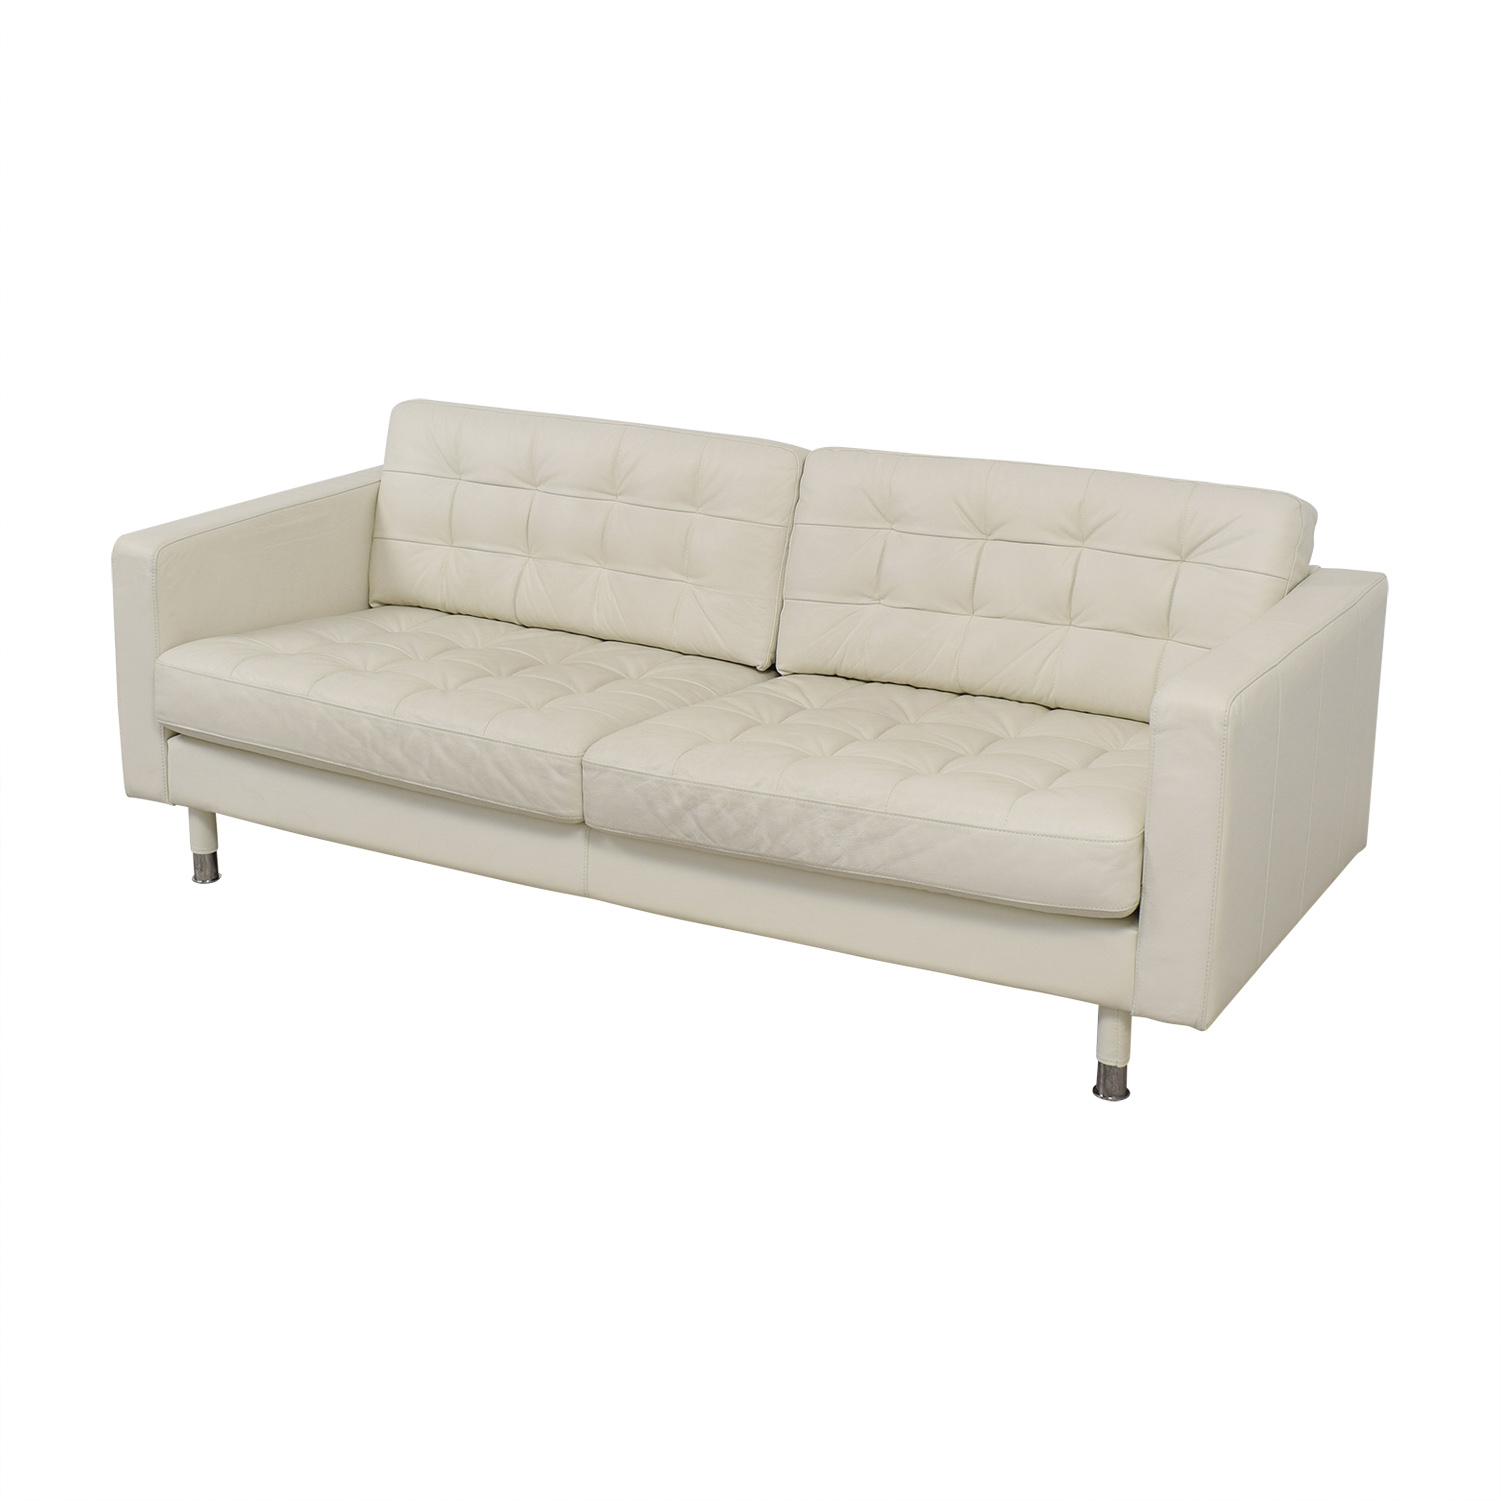 38% OFF - IKEA IKEA Tufted White Leather Couch / Sofas